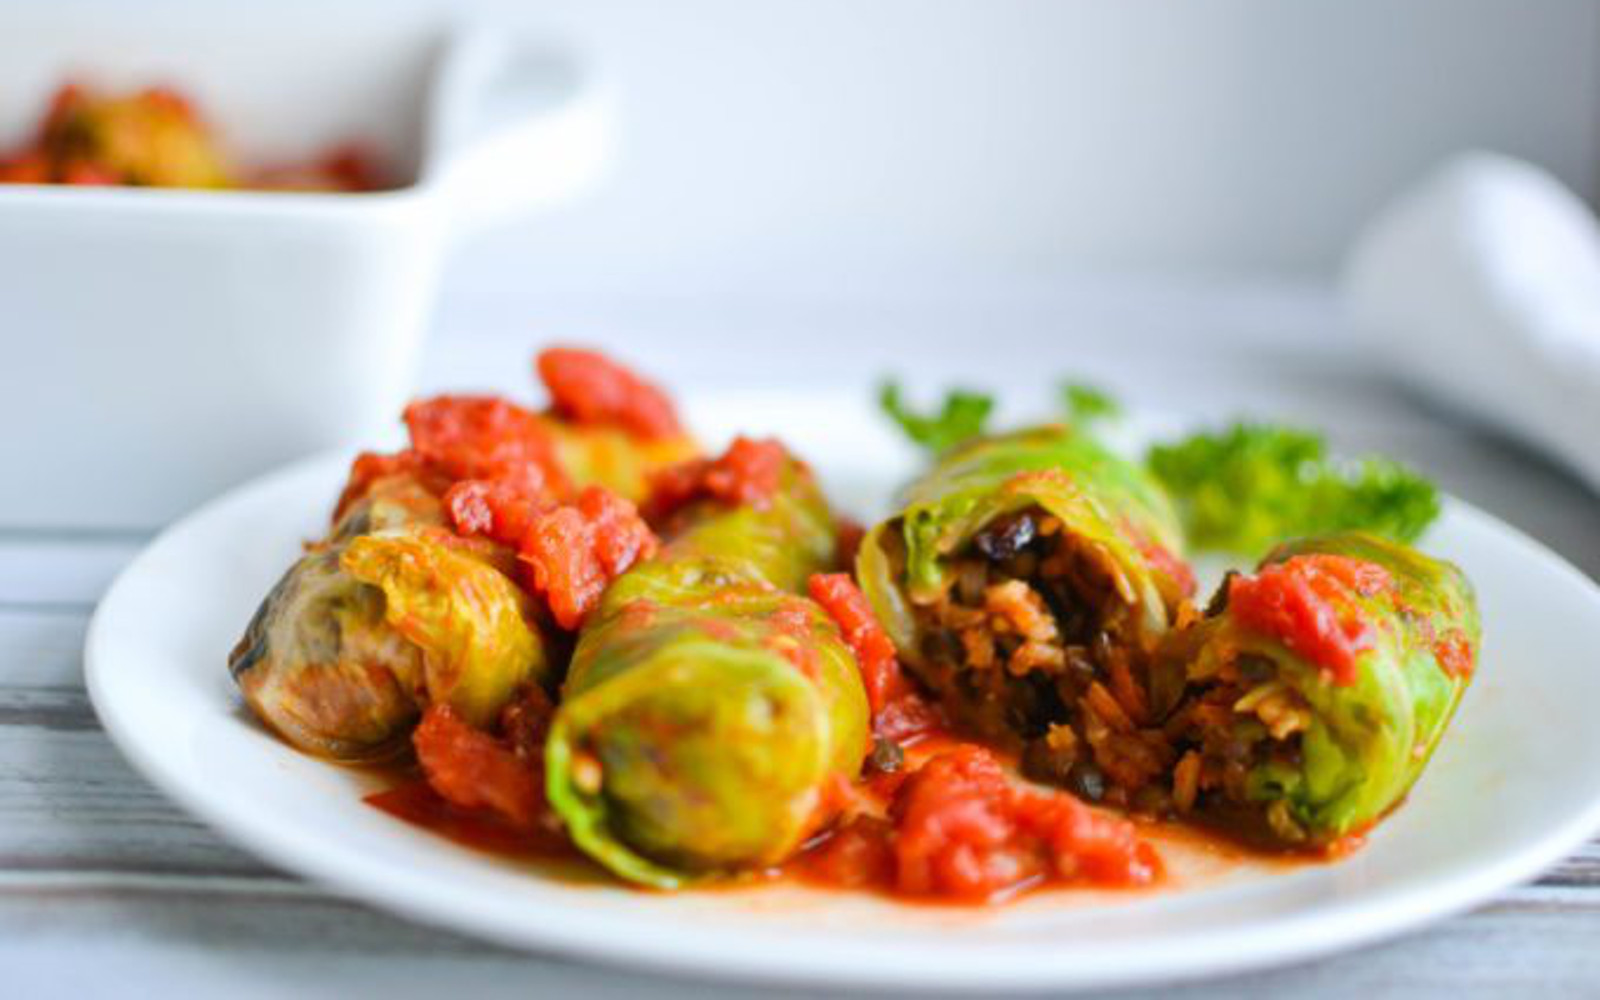 Vegan Brown Rice and Lentil Stuffed Cabbage Rolls